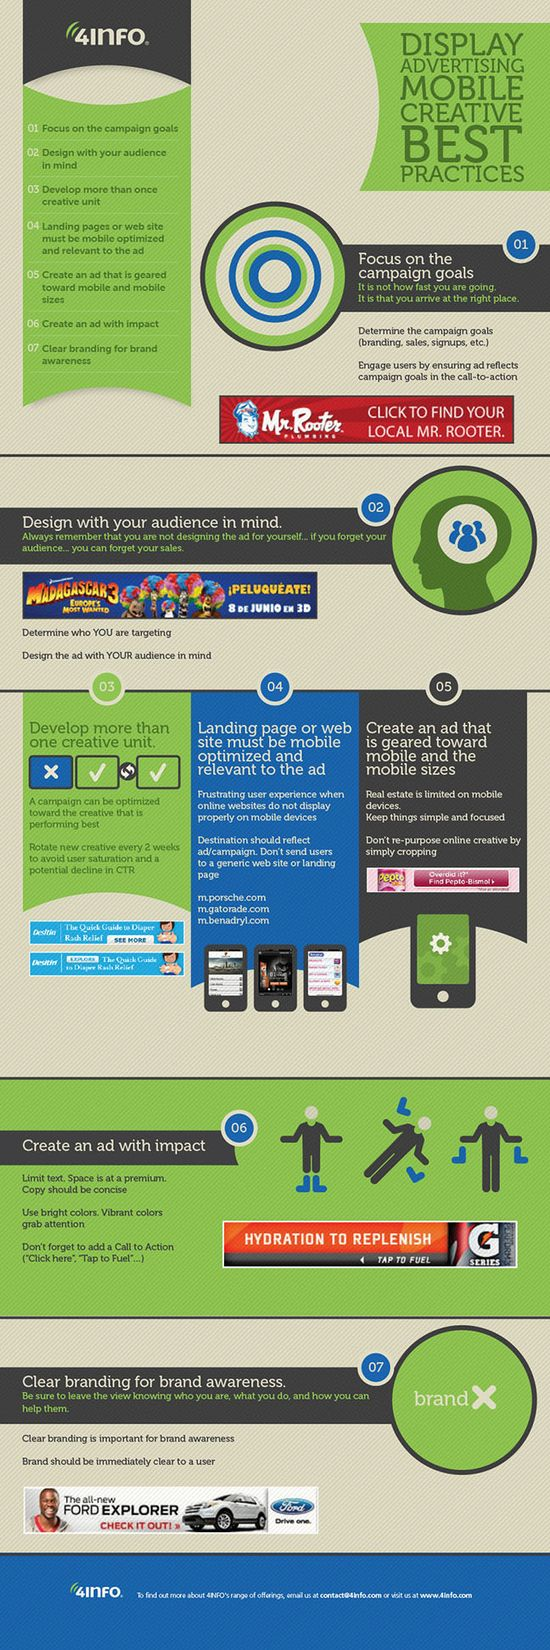 Display Advertising Mobile Creative Best Practices